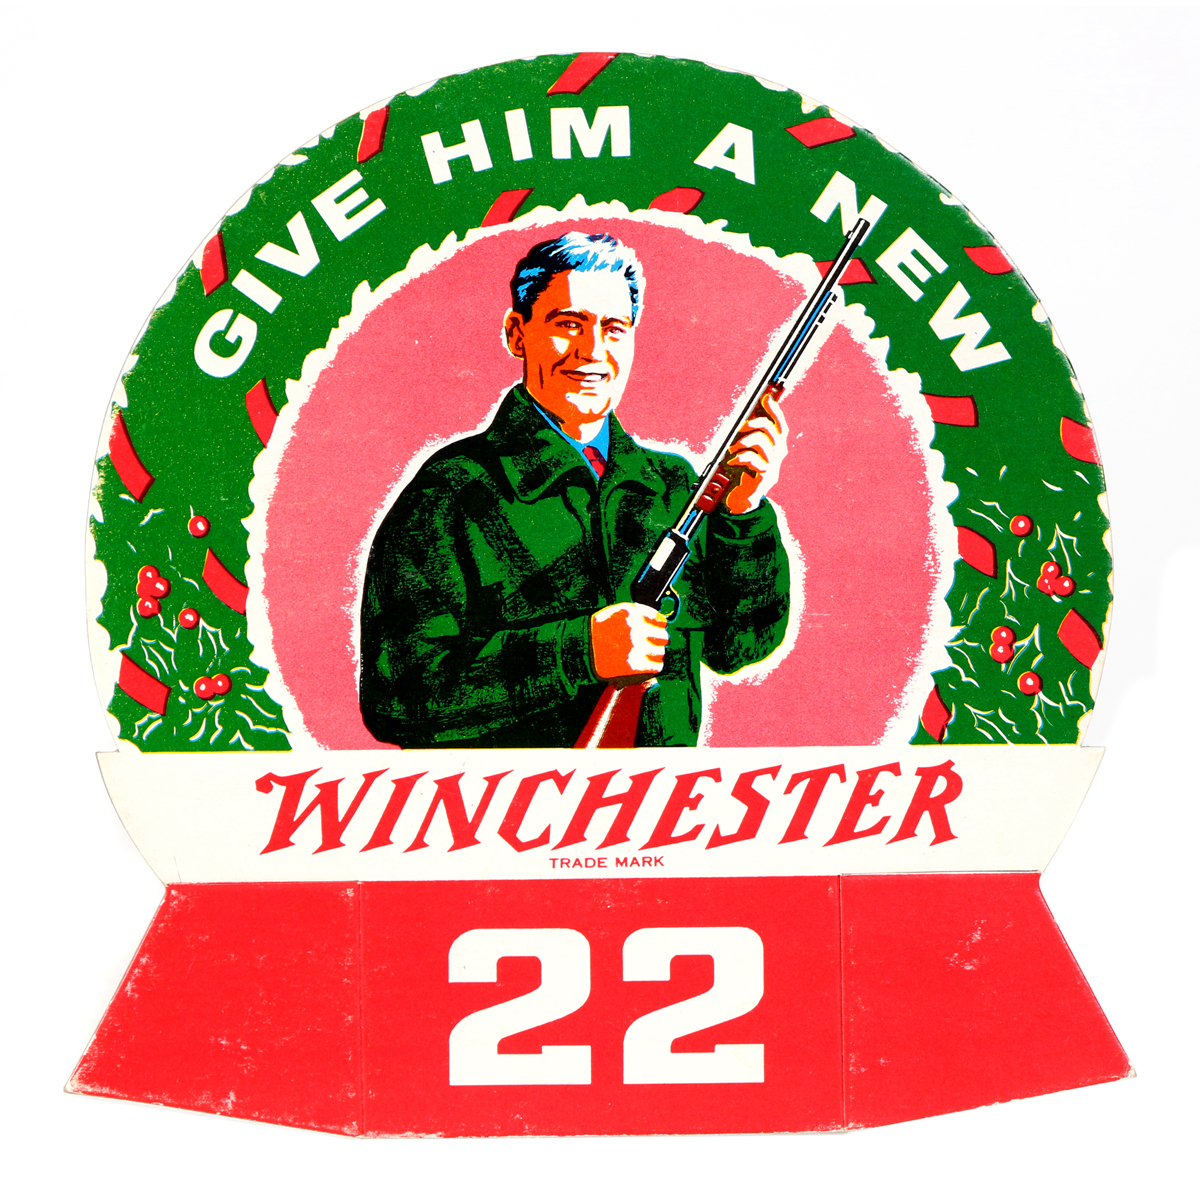 Winchester 22's Sign